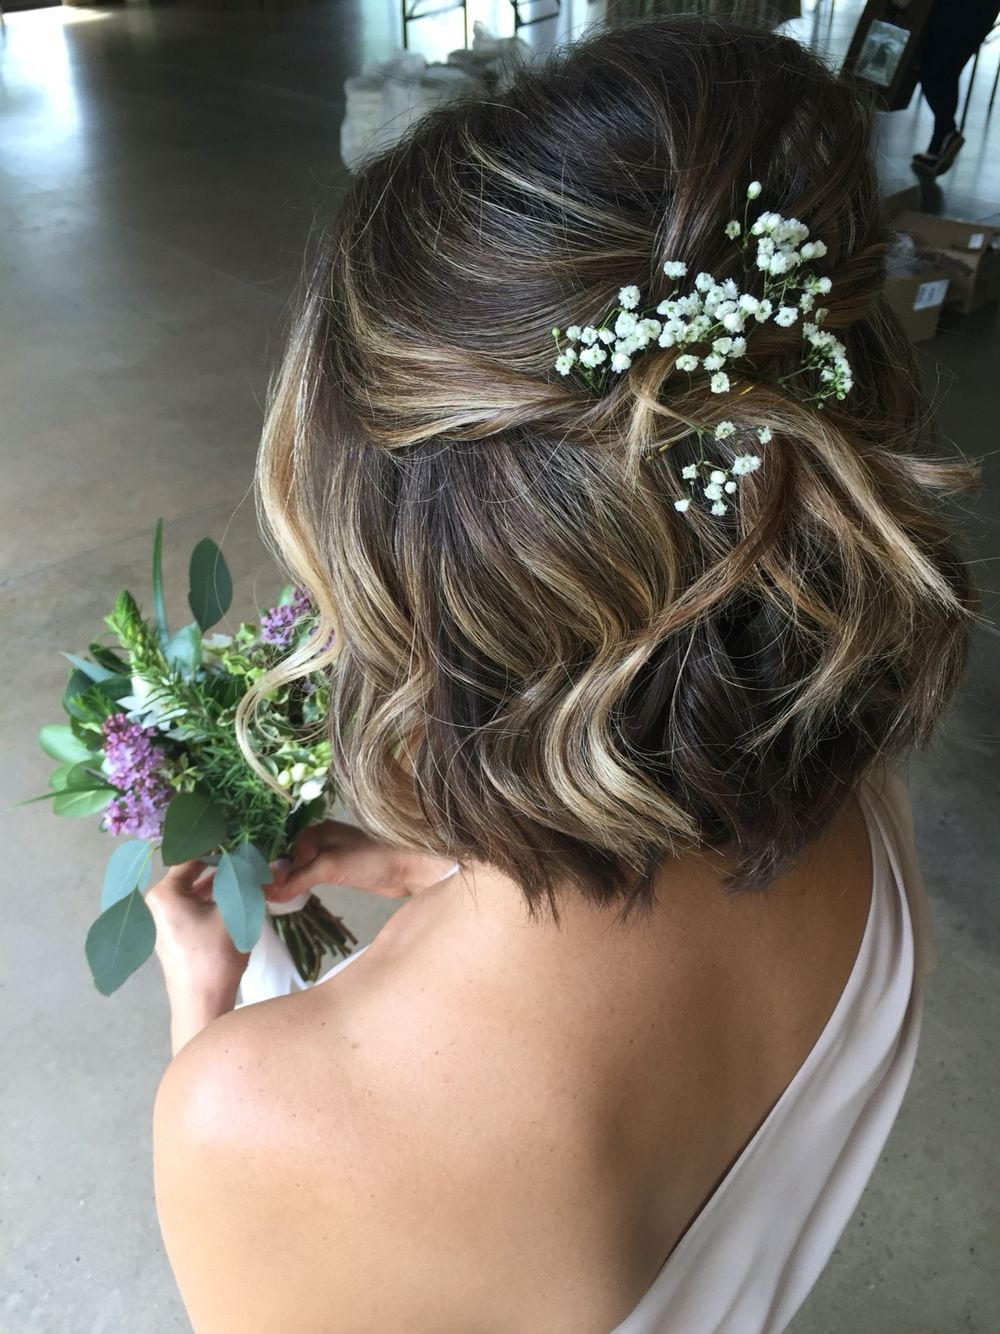 Bridesmaid Hairstyles For Short Hair   Best Hairstyles For Throughout Brides Hairstyles For Short Hair (View 3 of 25)